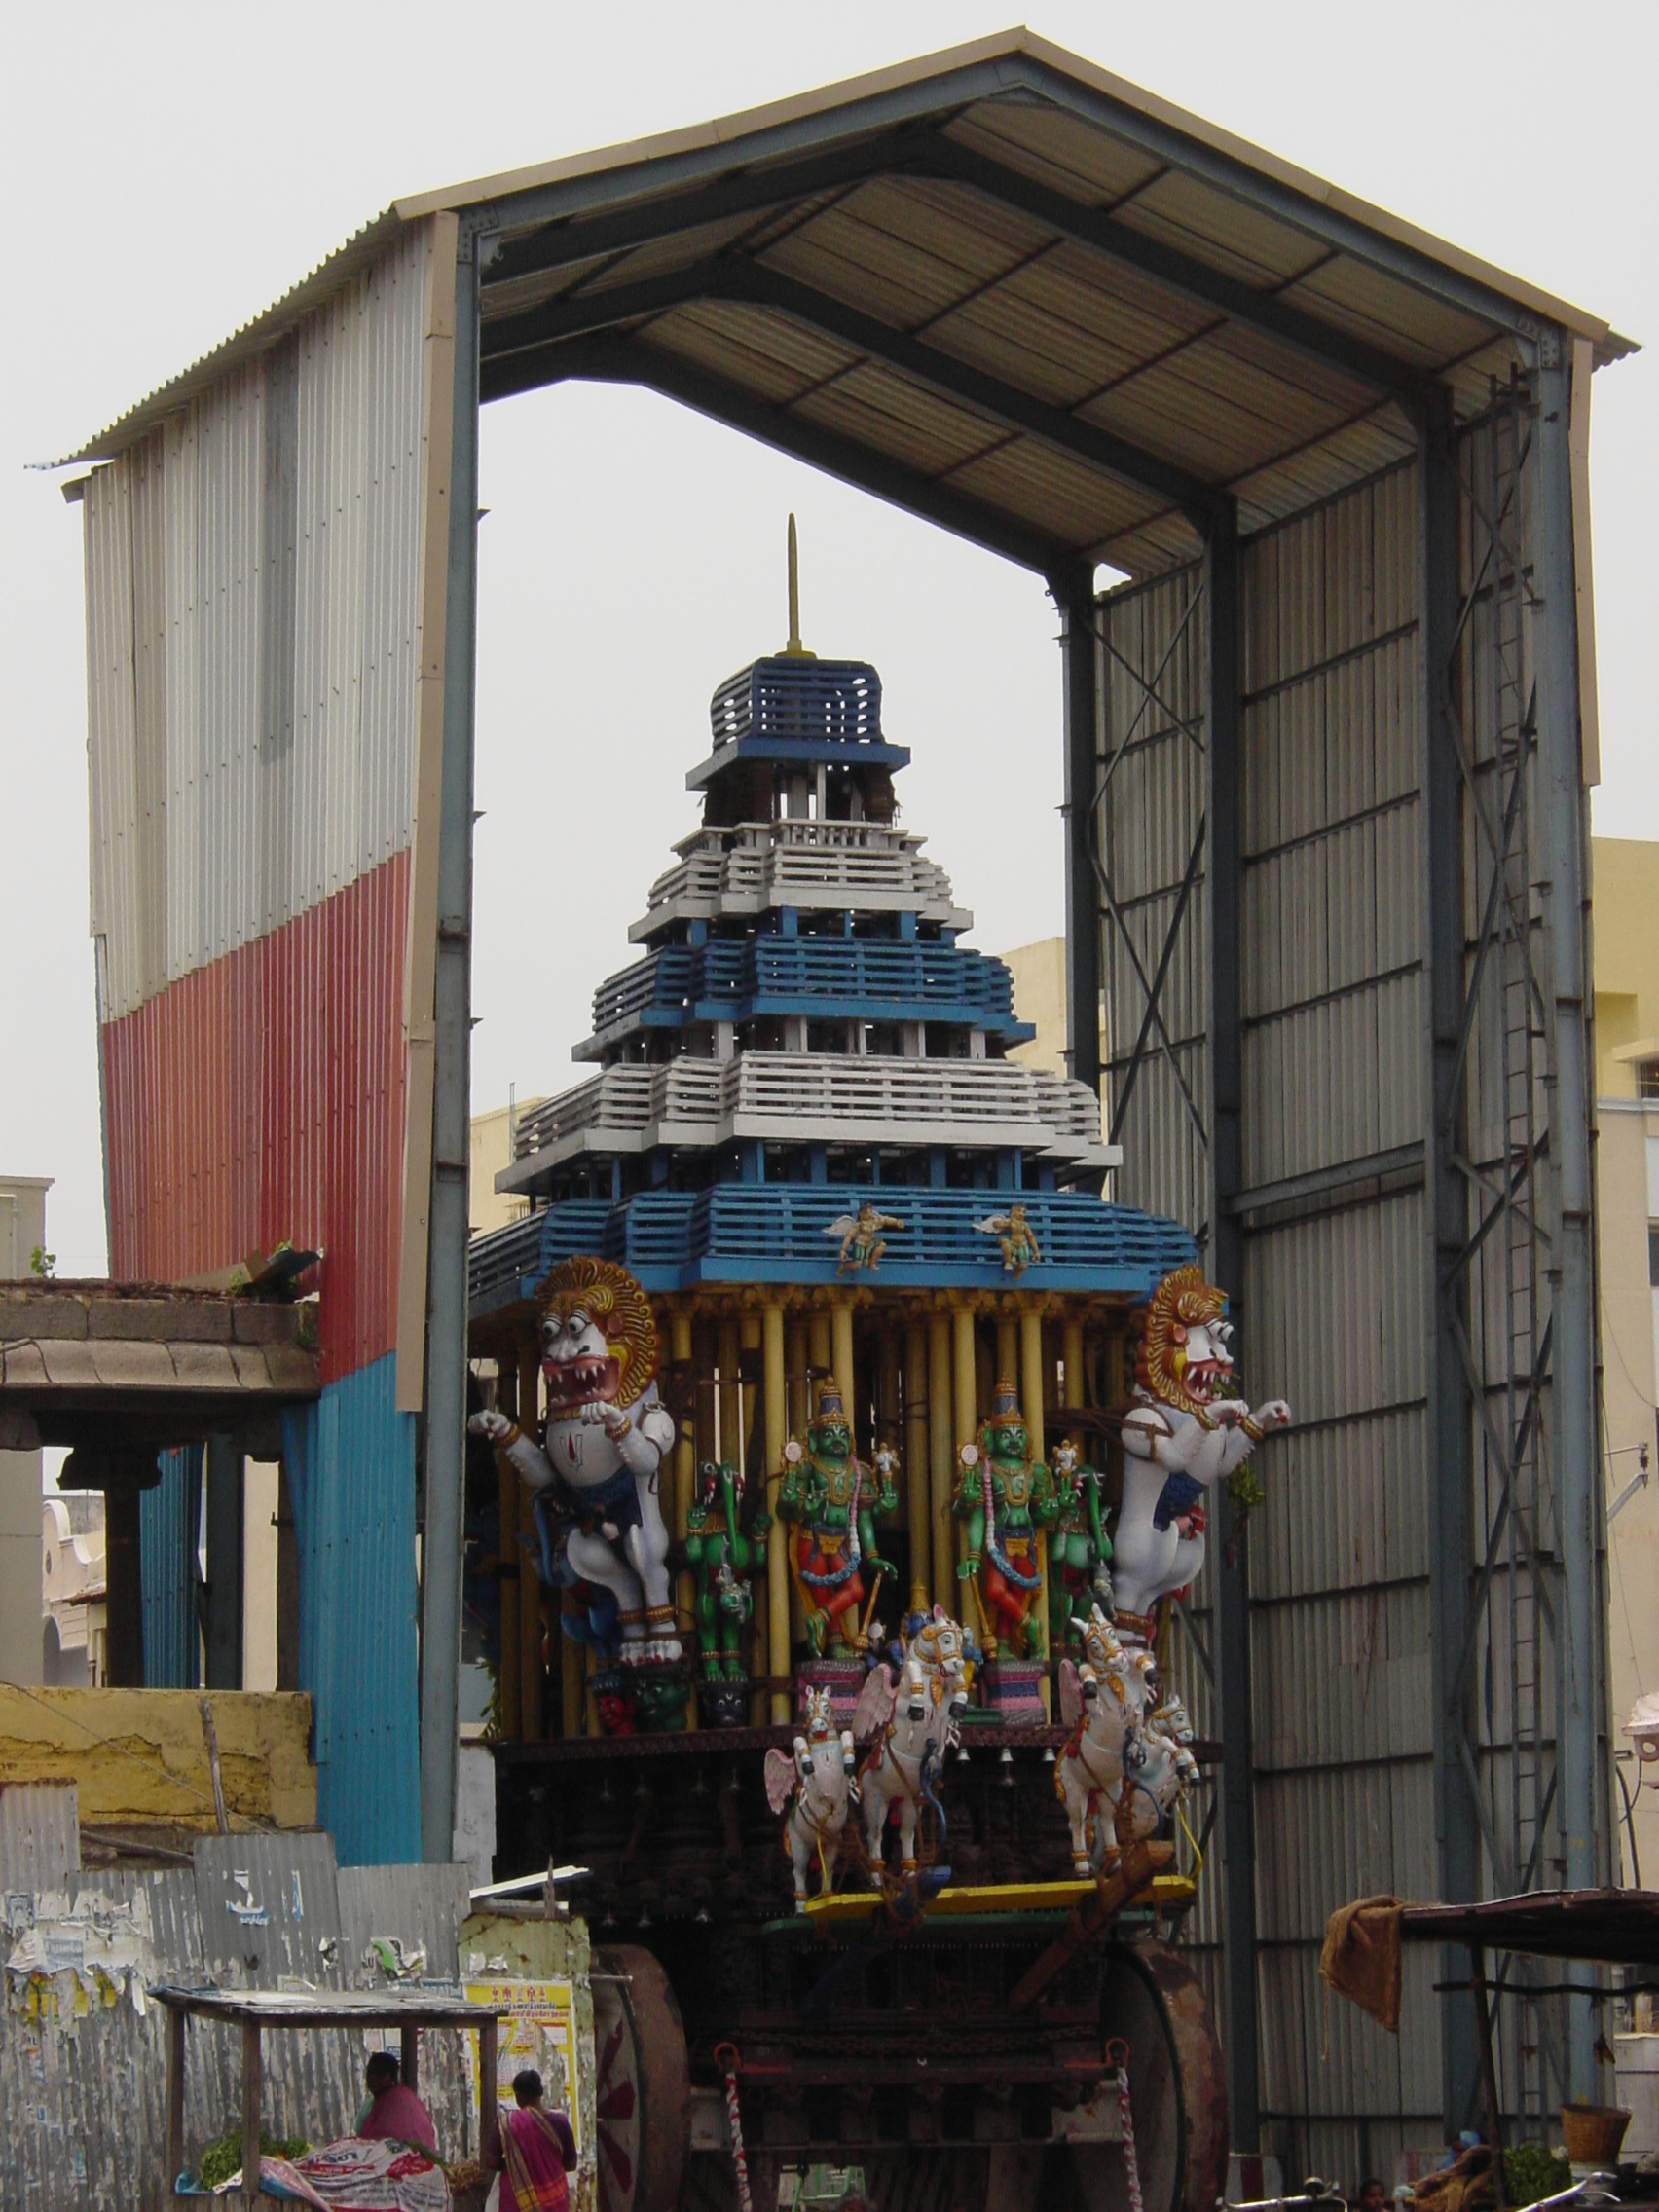 Chennai_statue_on_cart